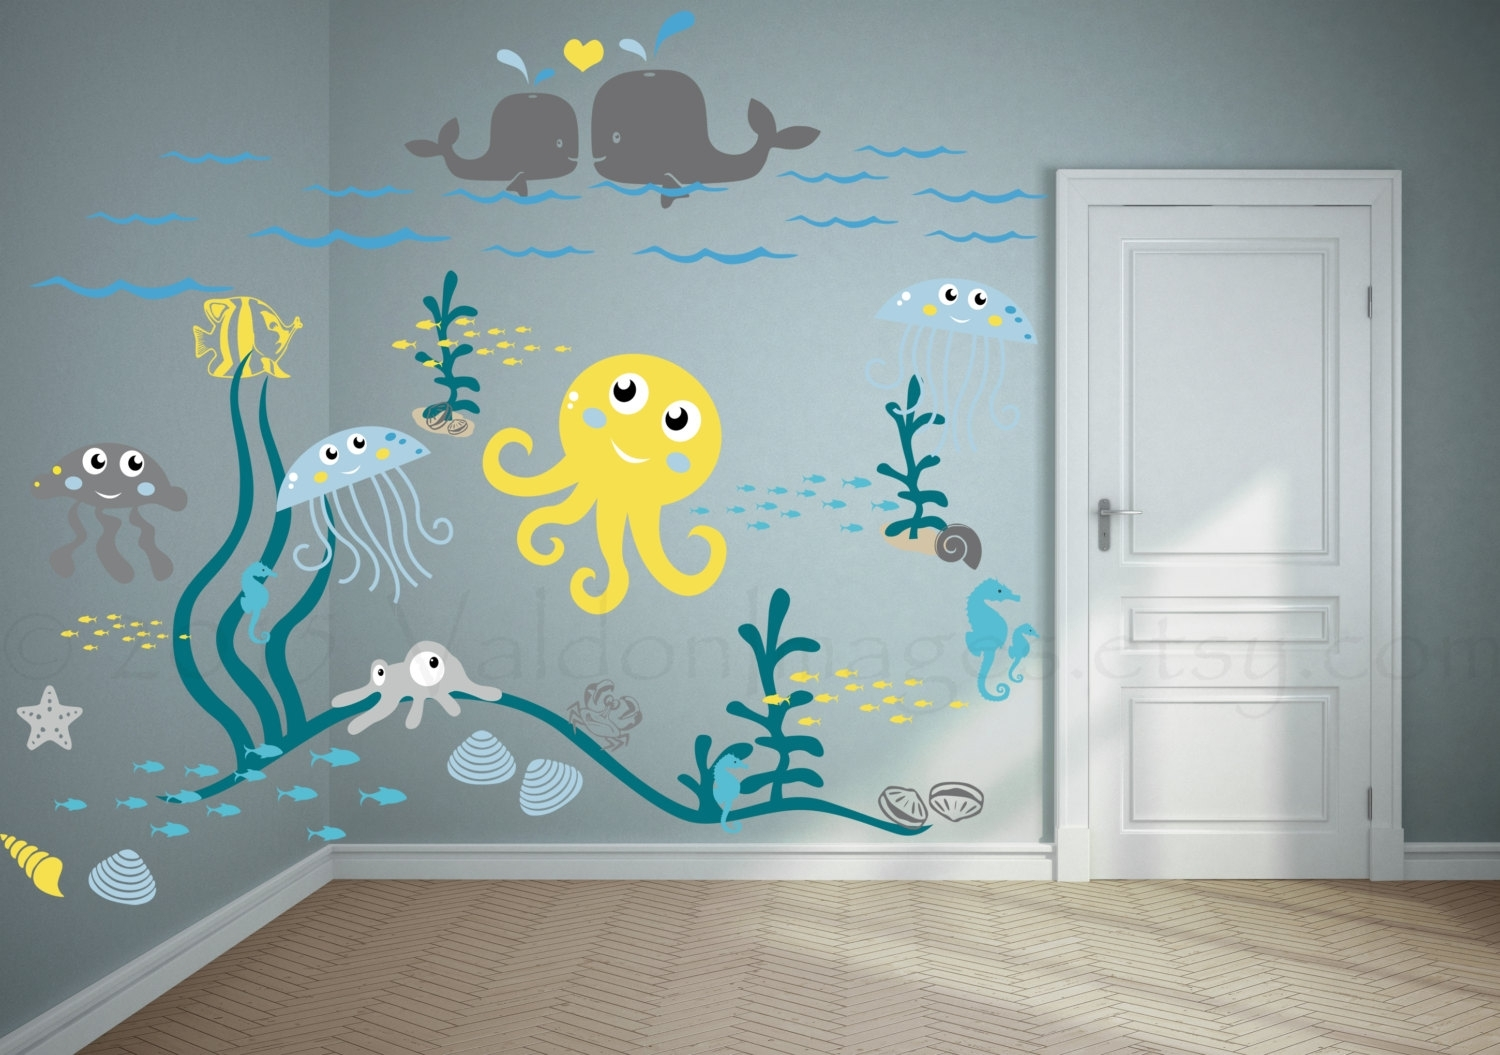 Jellyfish Adventure Nursery Wall Decal Ocean Valdonimages Gallery pertaining to Sea Life Wall Art (Image 9 of 20)